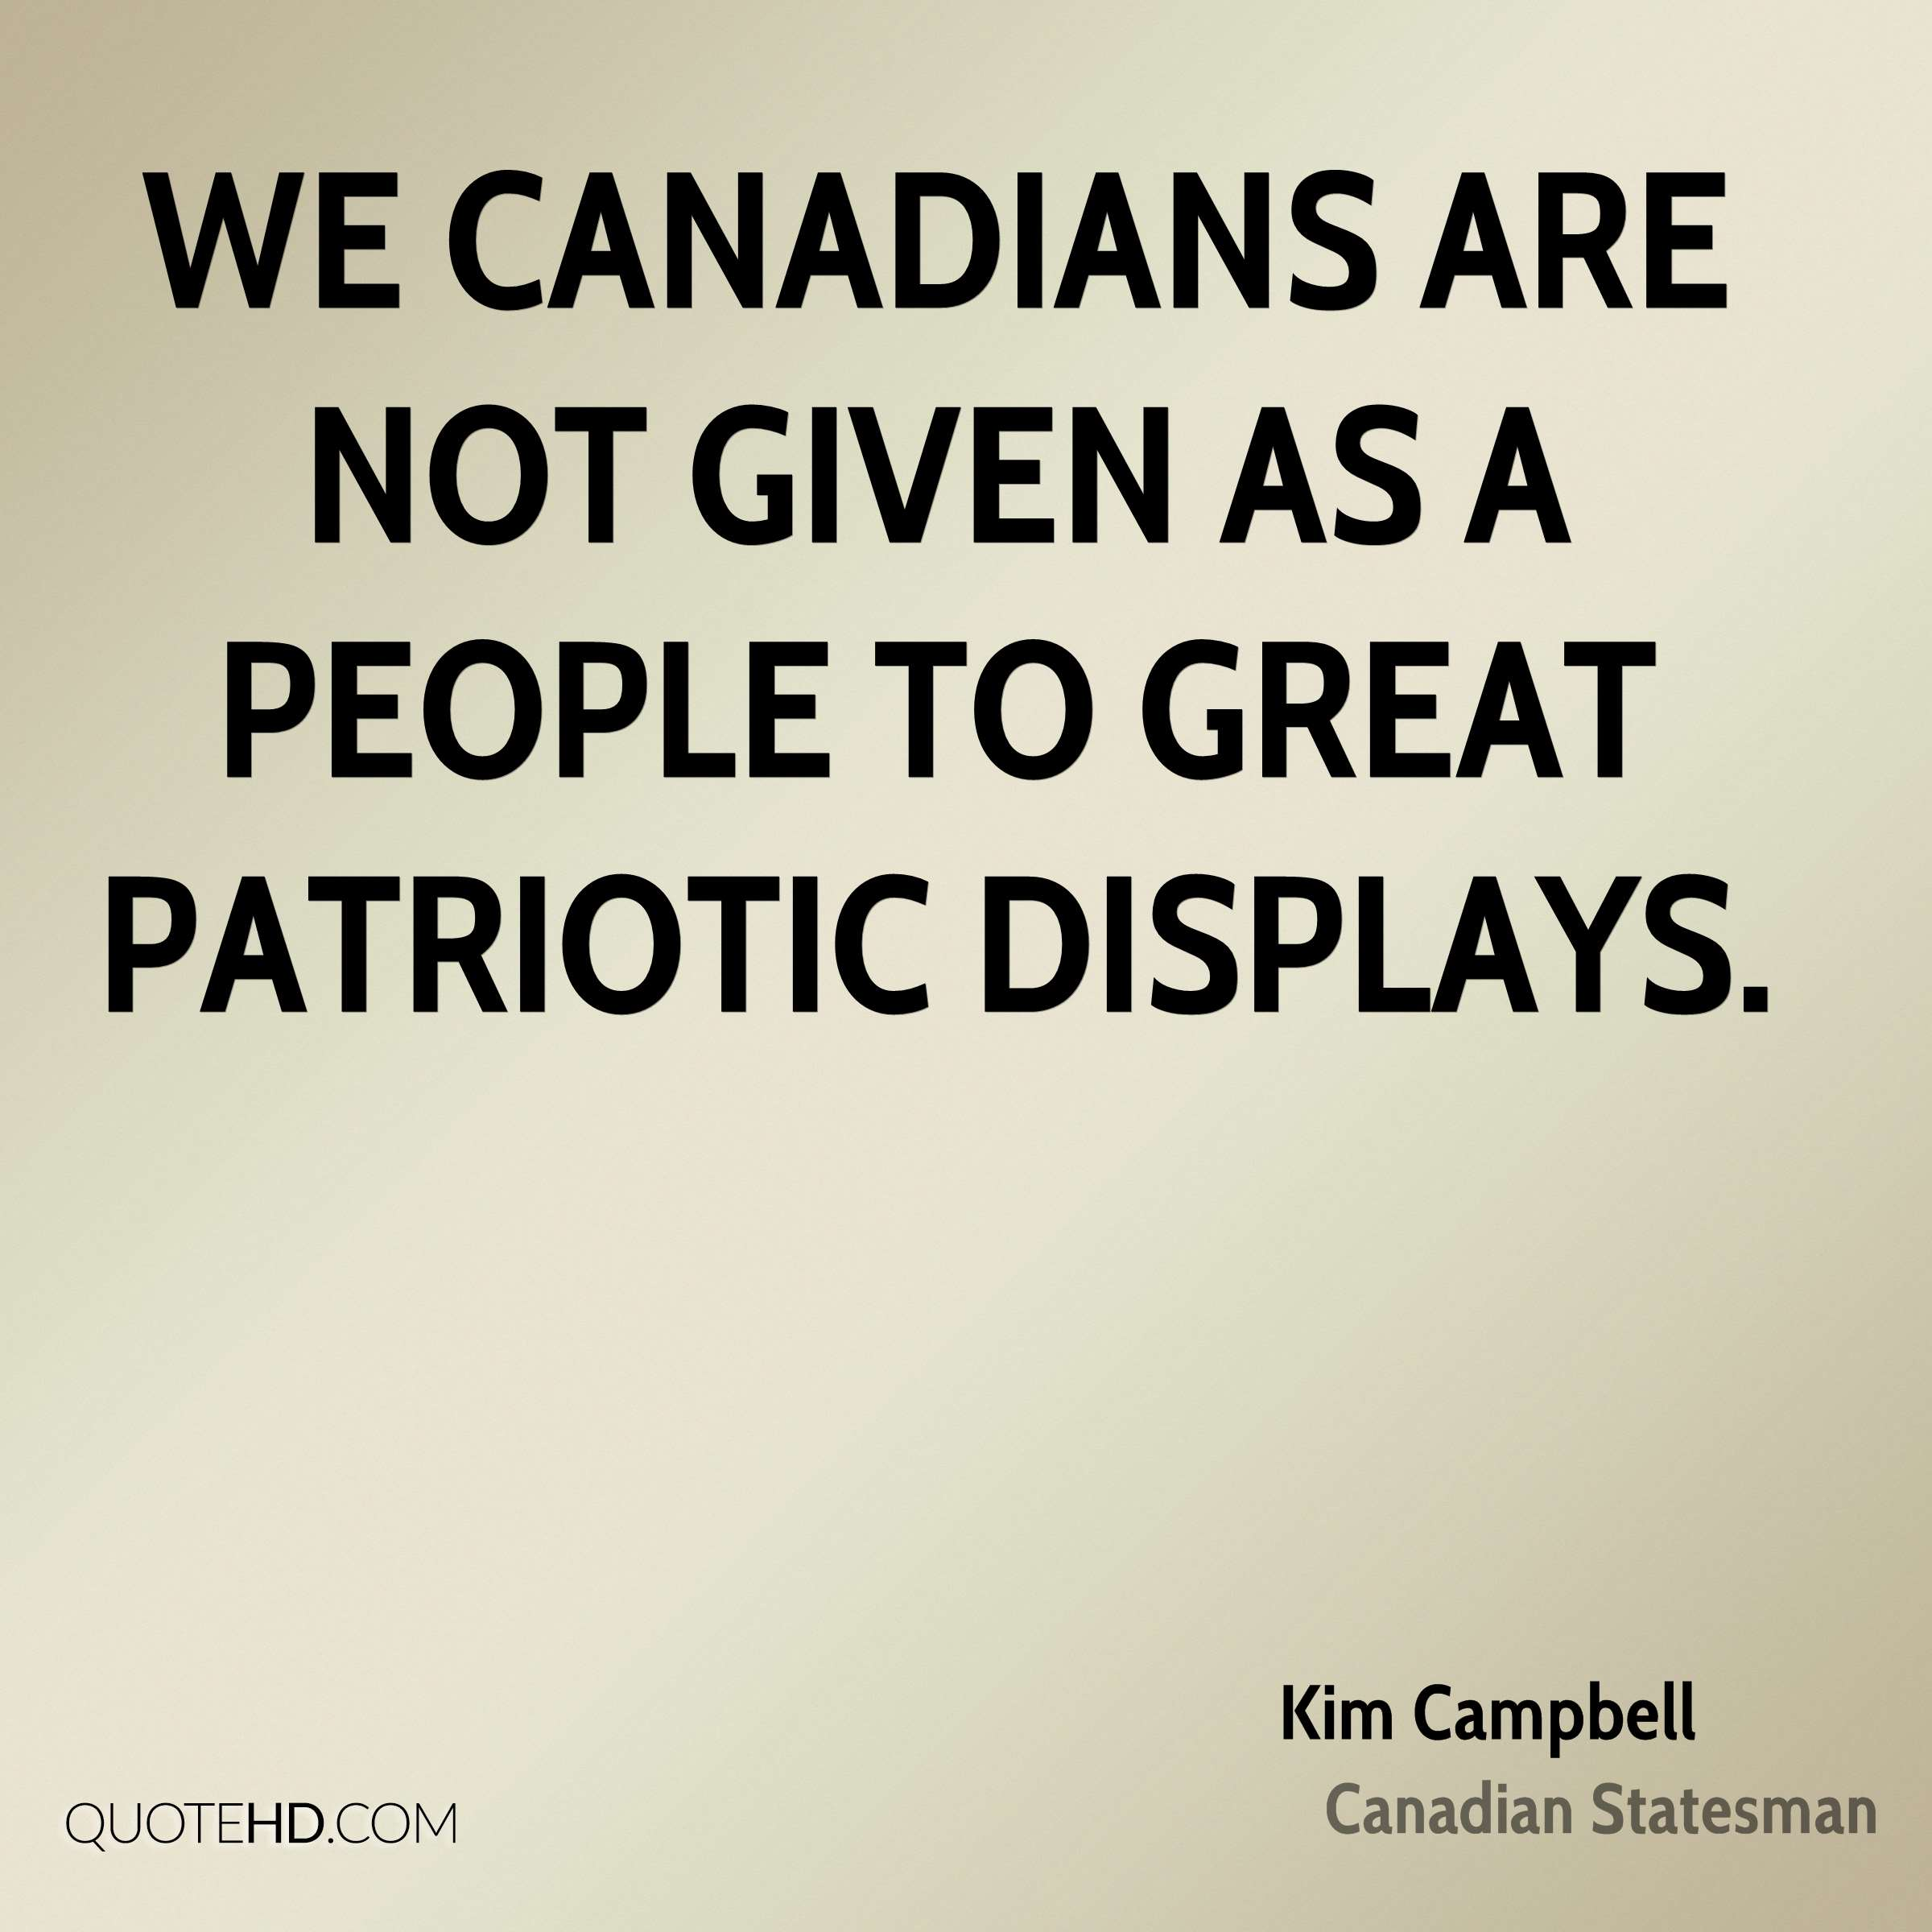 We Canadians are not given as a people to great patriotic displays.